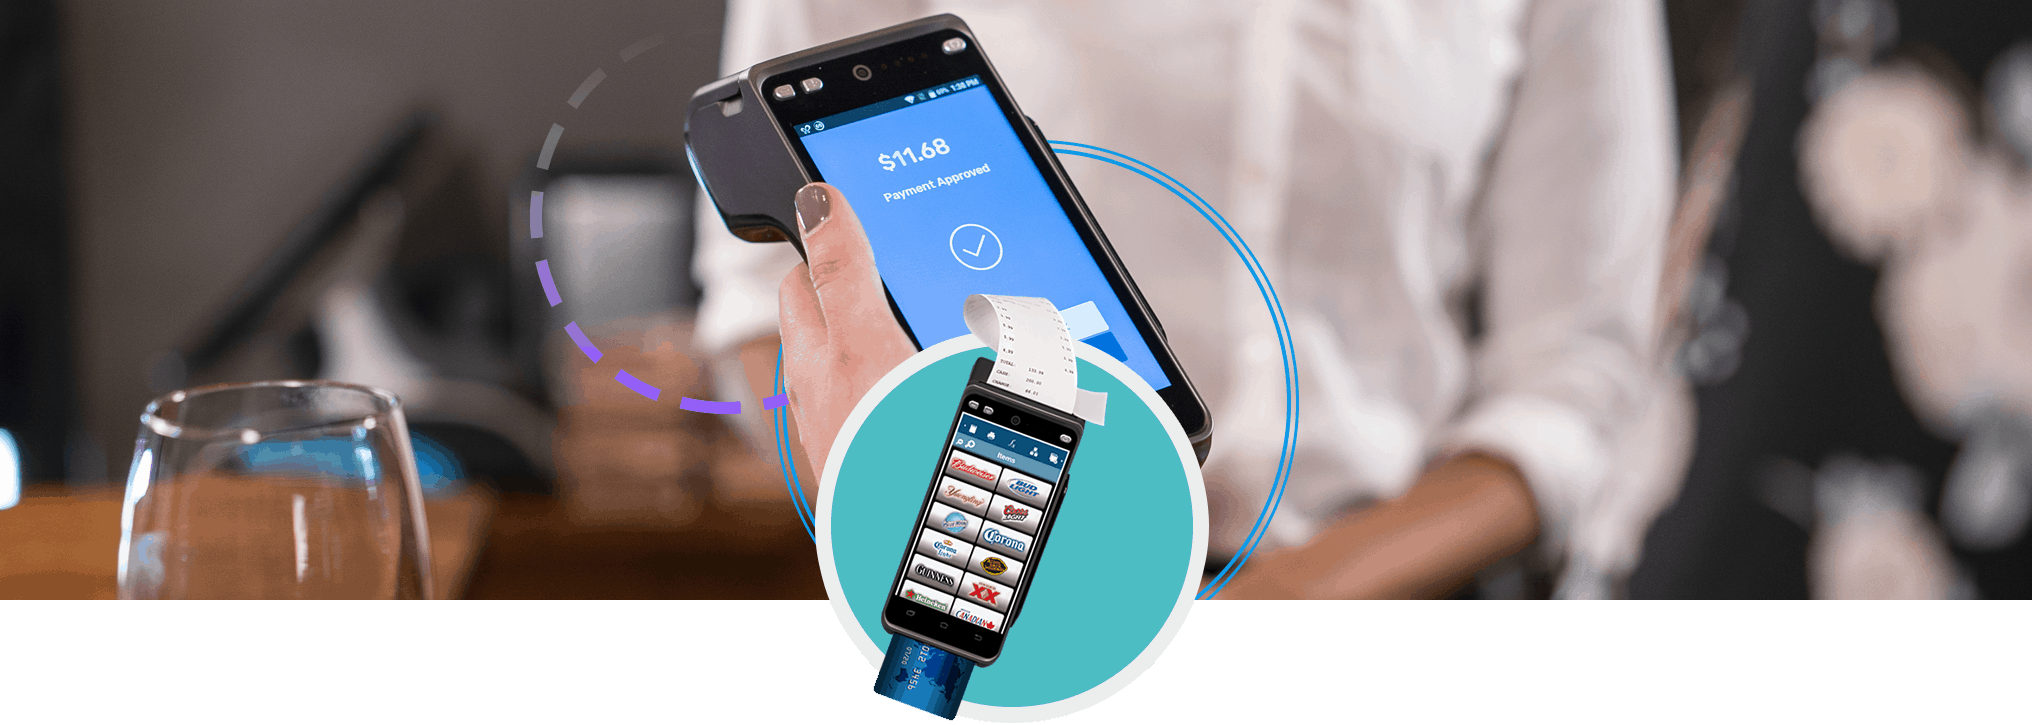 SkyTab™ tableside payment terminal